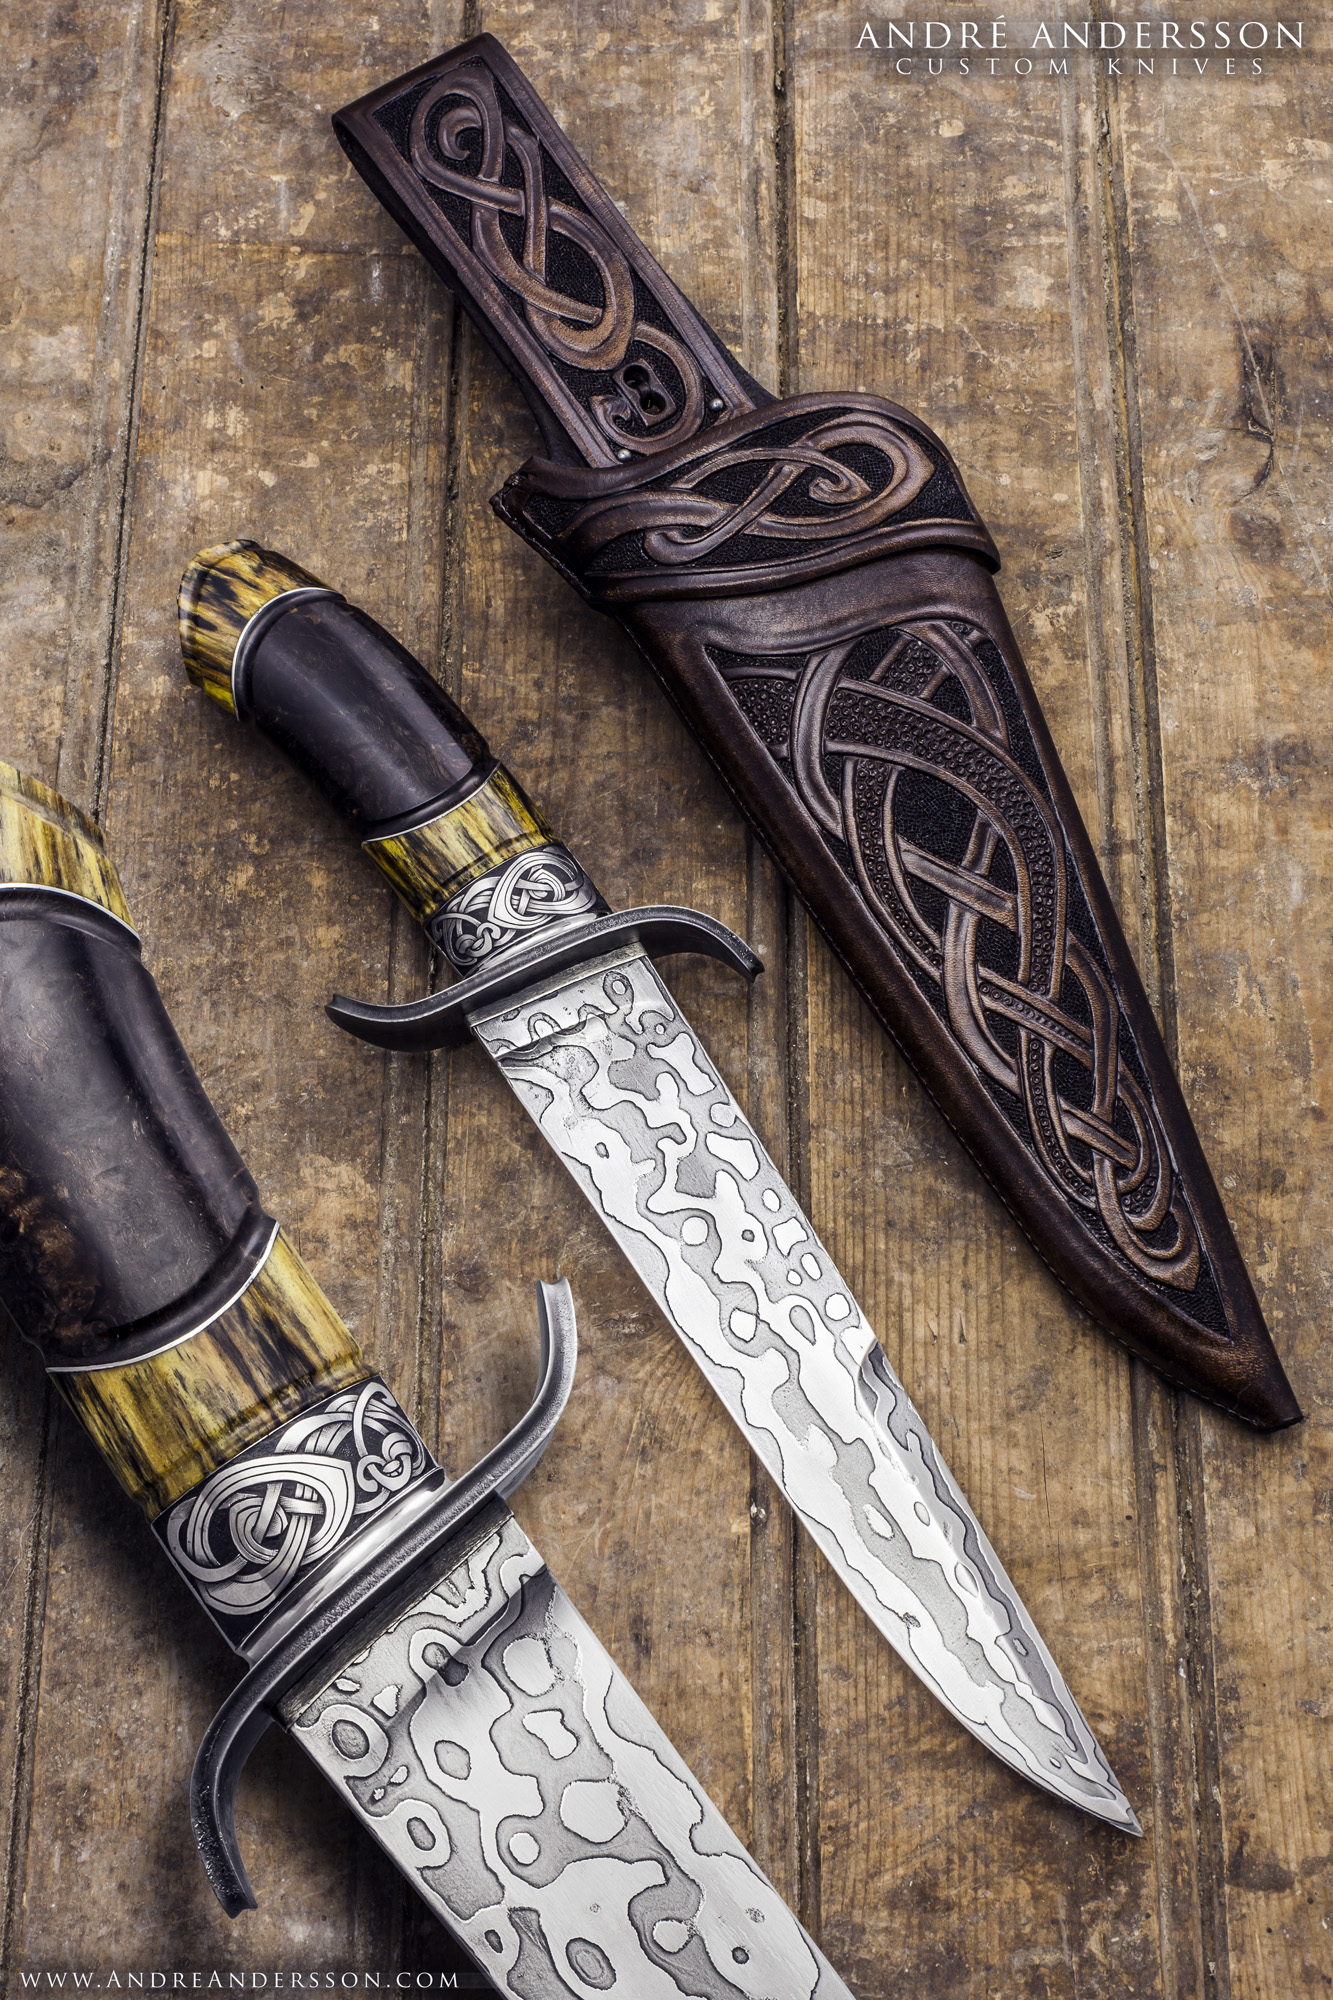 Andr Andersson Custom Knives From Sweden